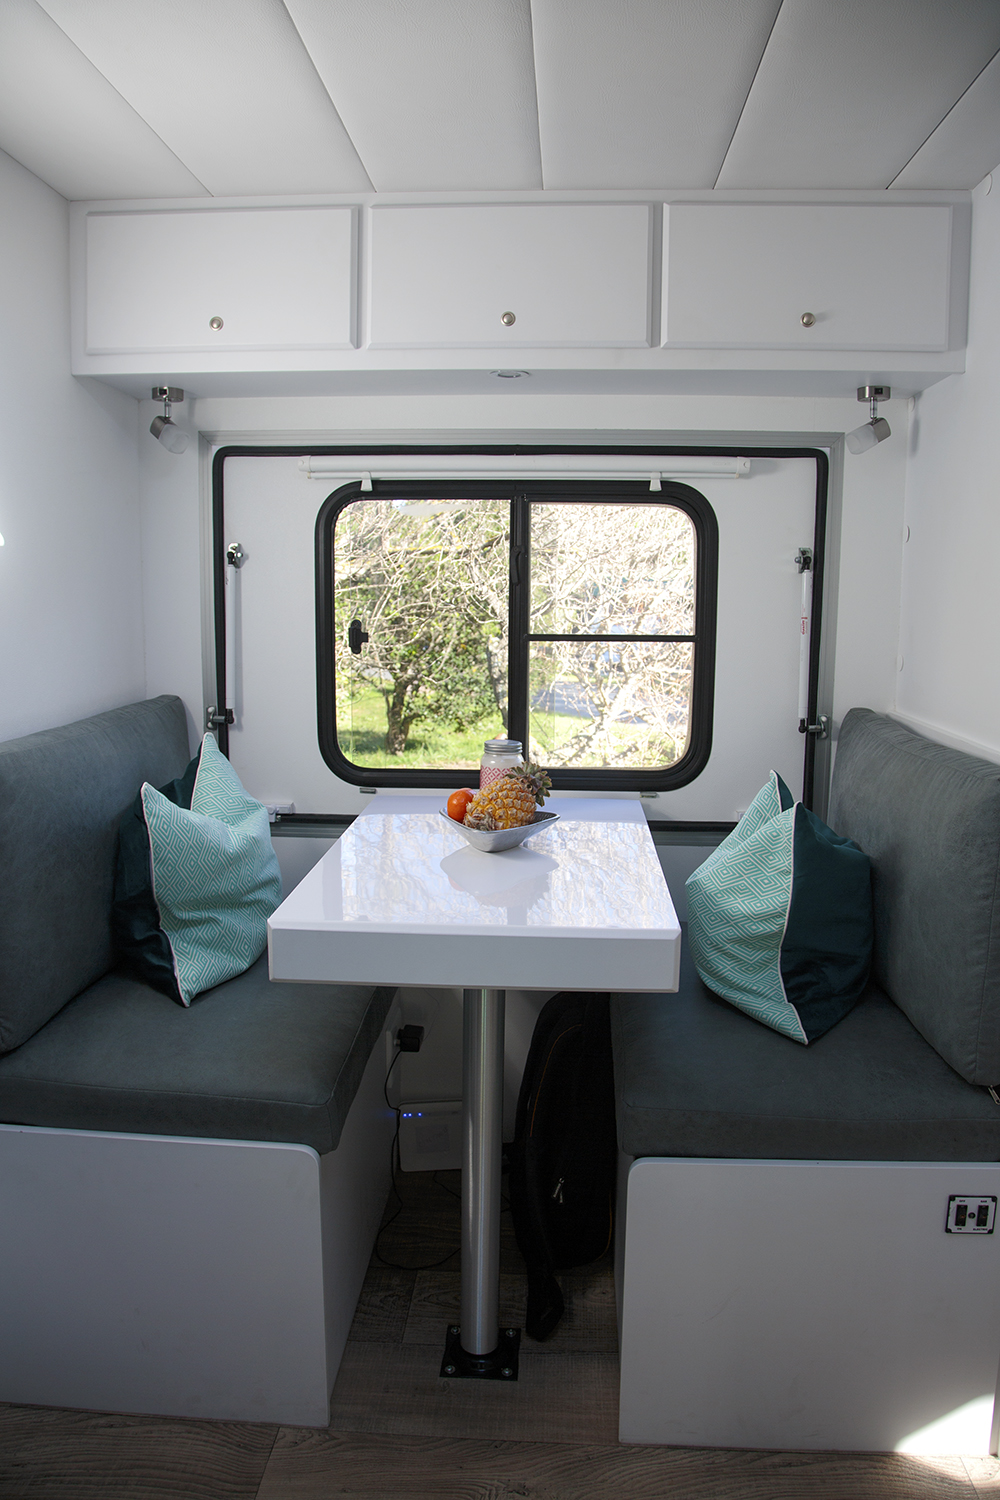 Glamping In Style - Have Keys and Wheels Will Travel - Image 20